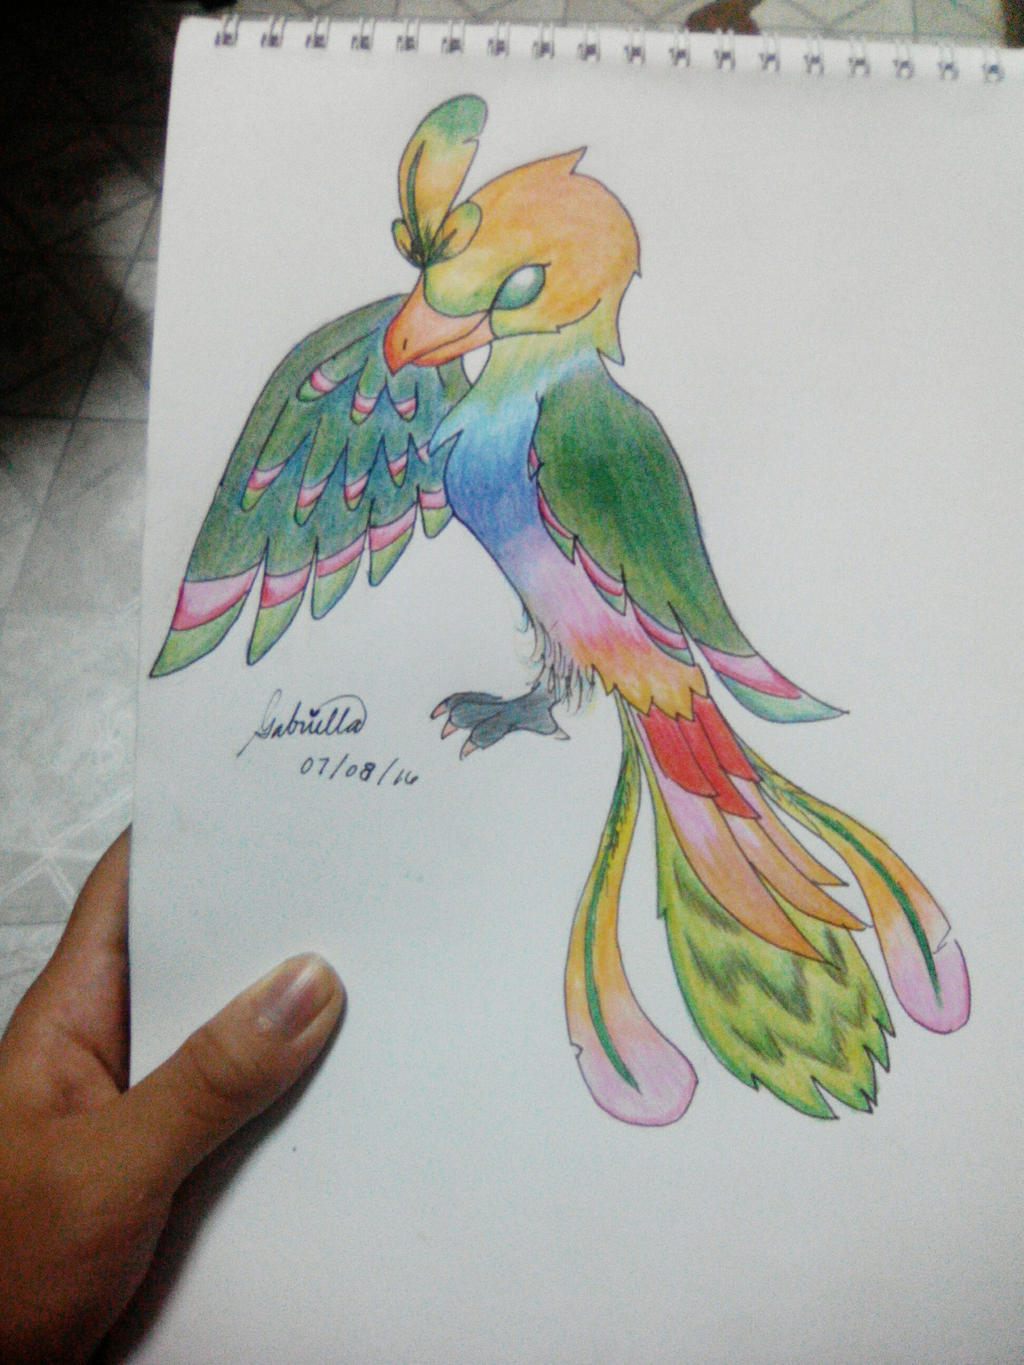 Rainbow Phoenix by imatrashcan2